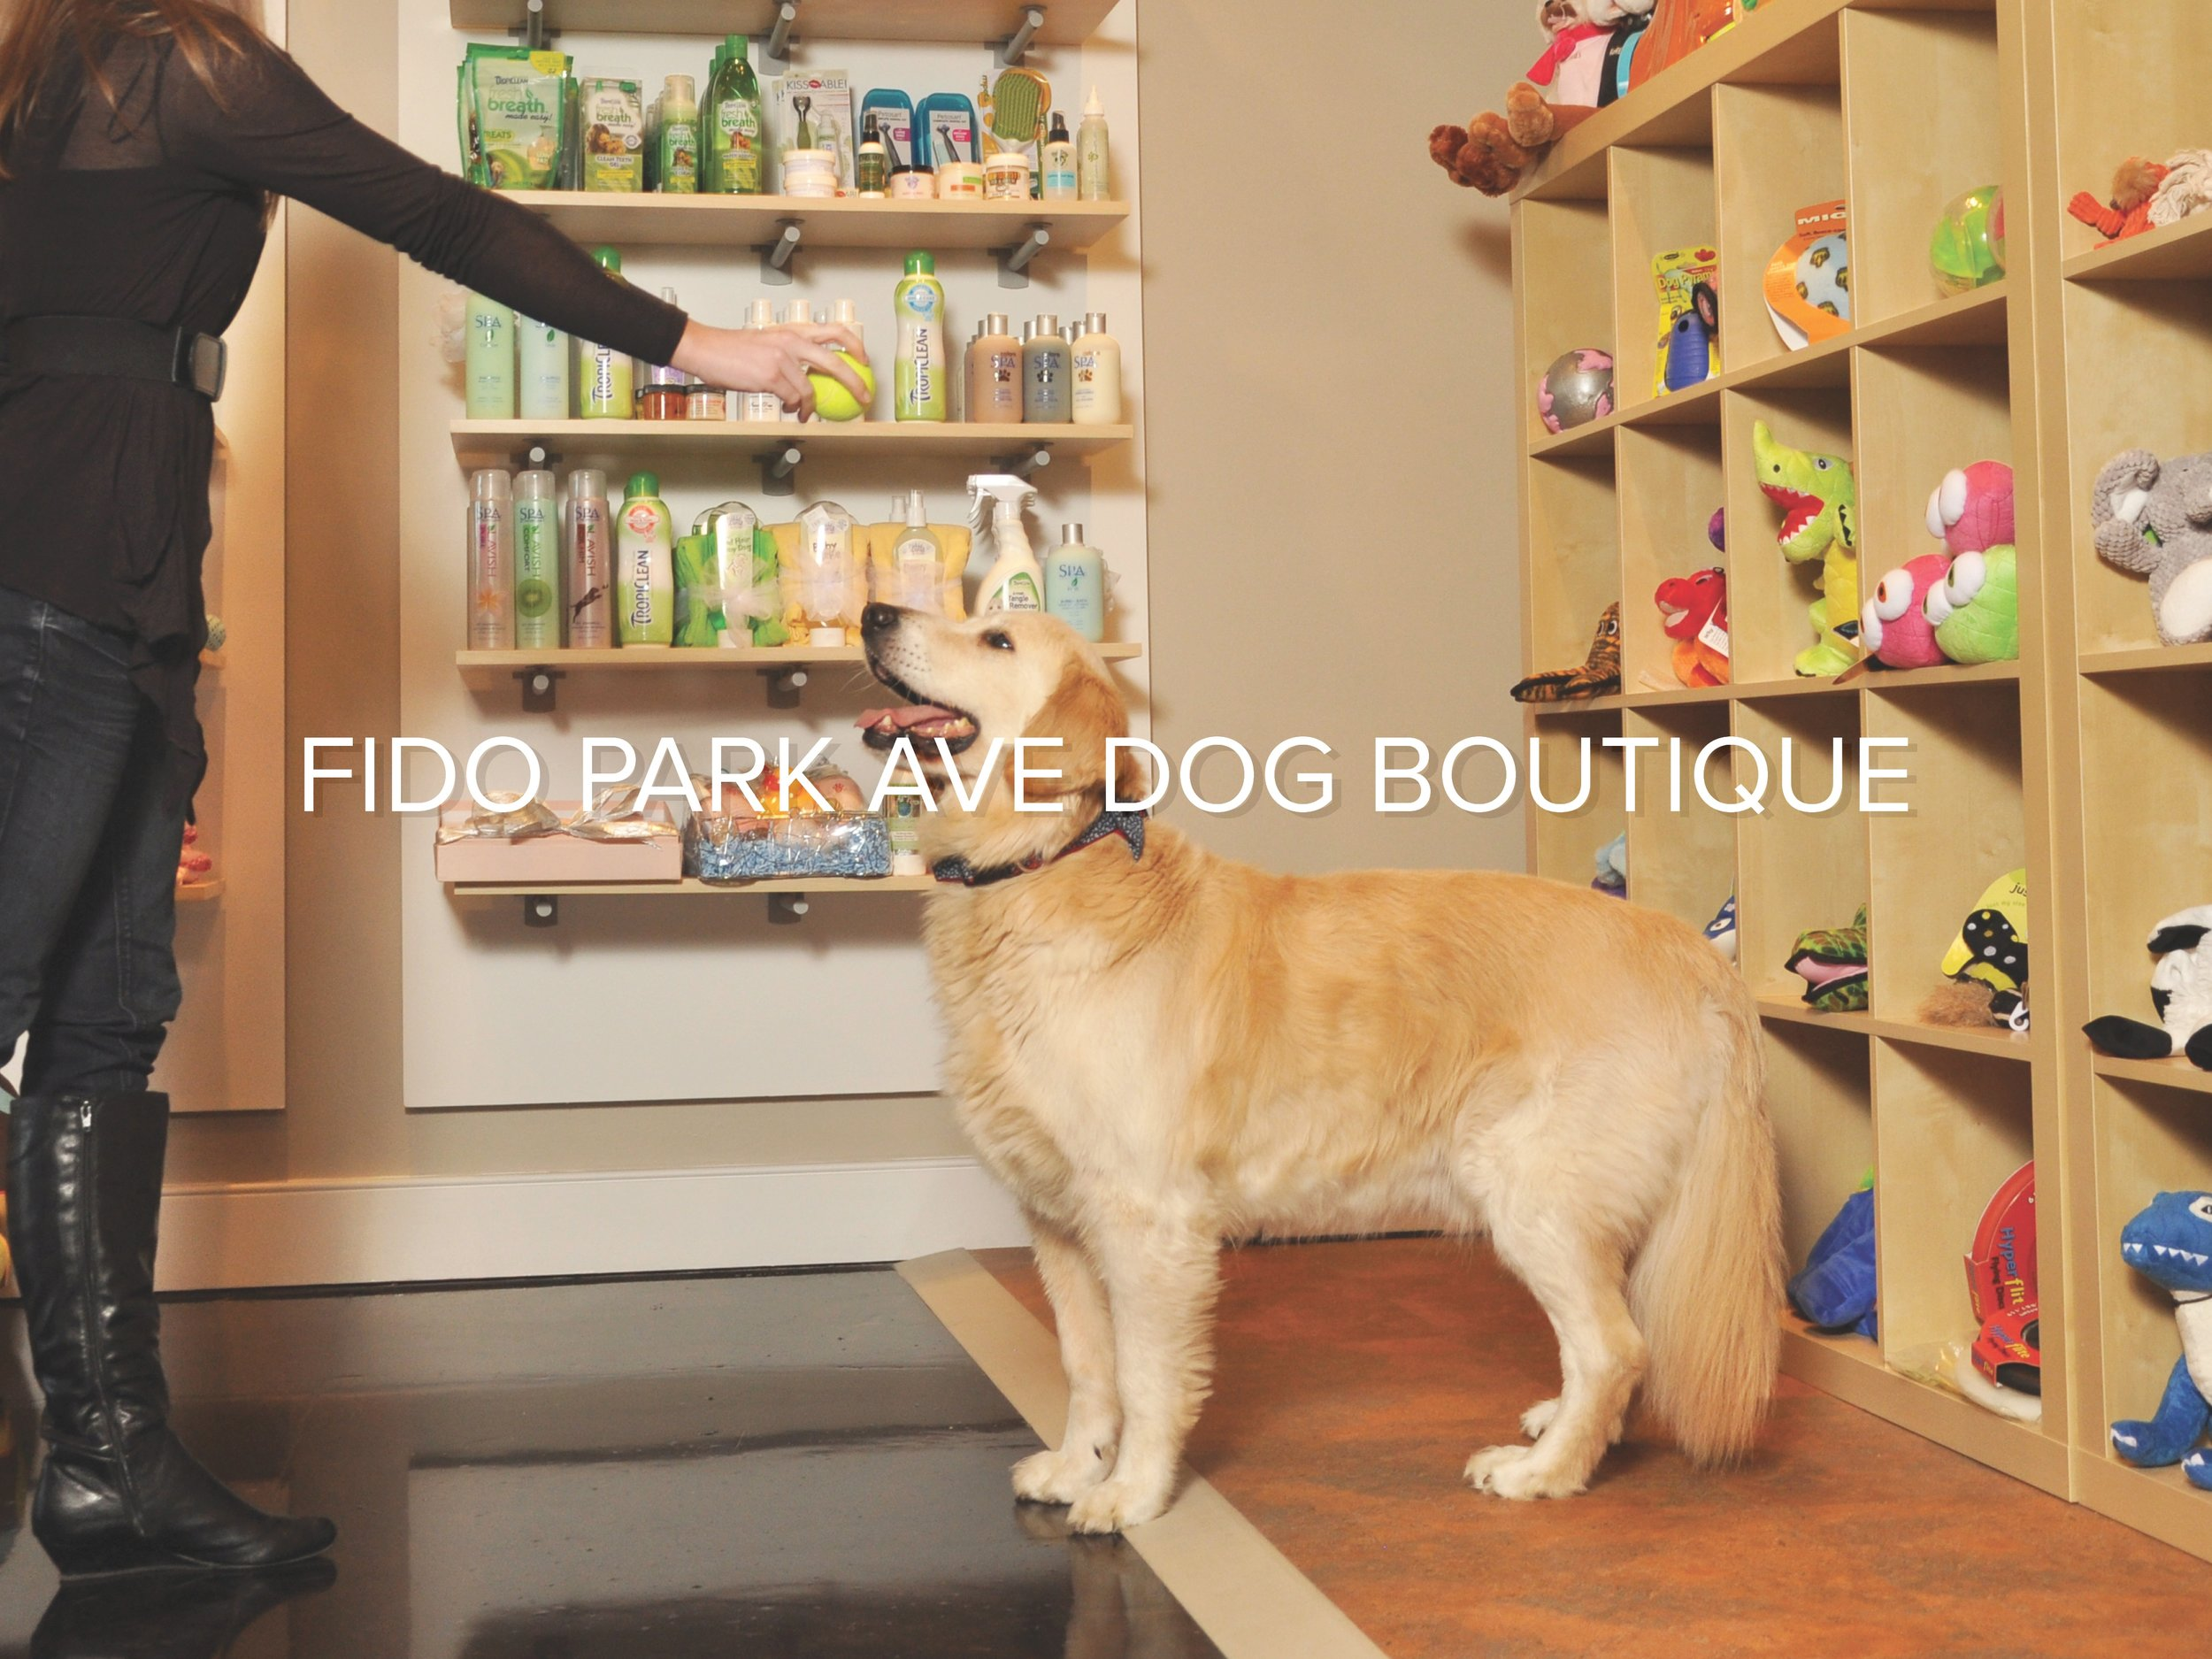 Fido Dog Boutique.jpg